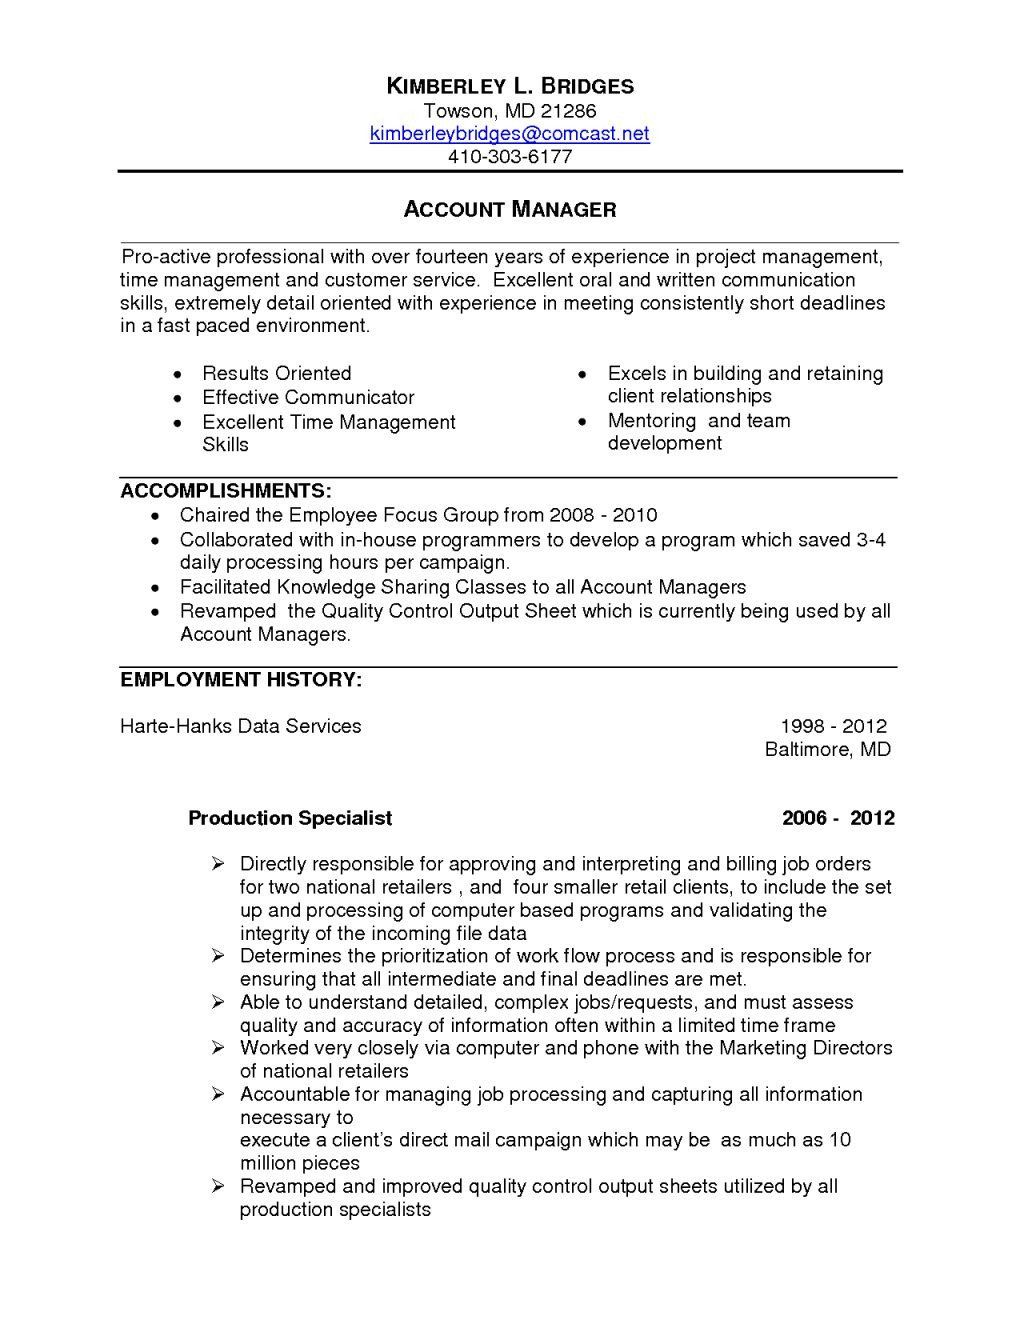 project manager resume summary beautiful examples marketing cool collection job Resume Marketing Resume Summary Examples